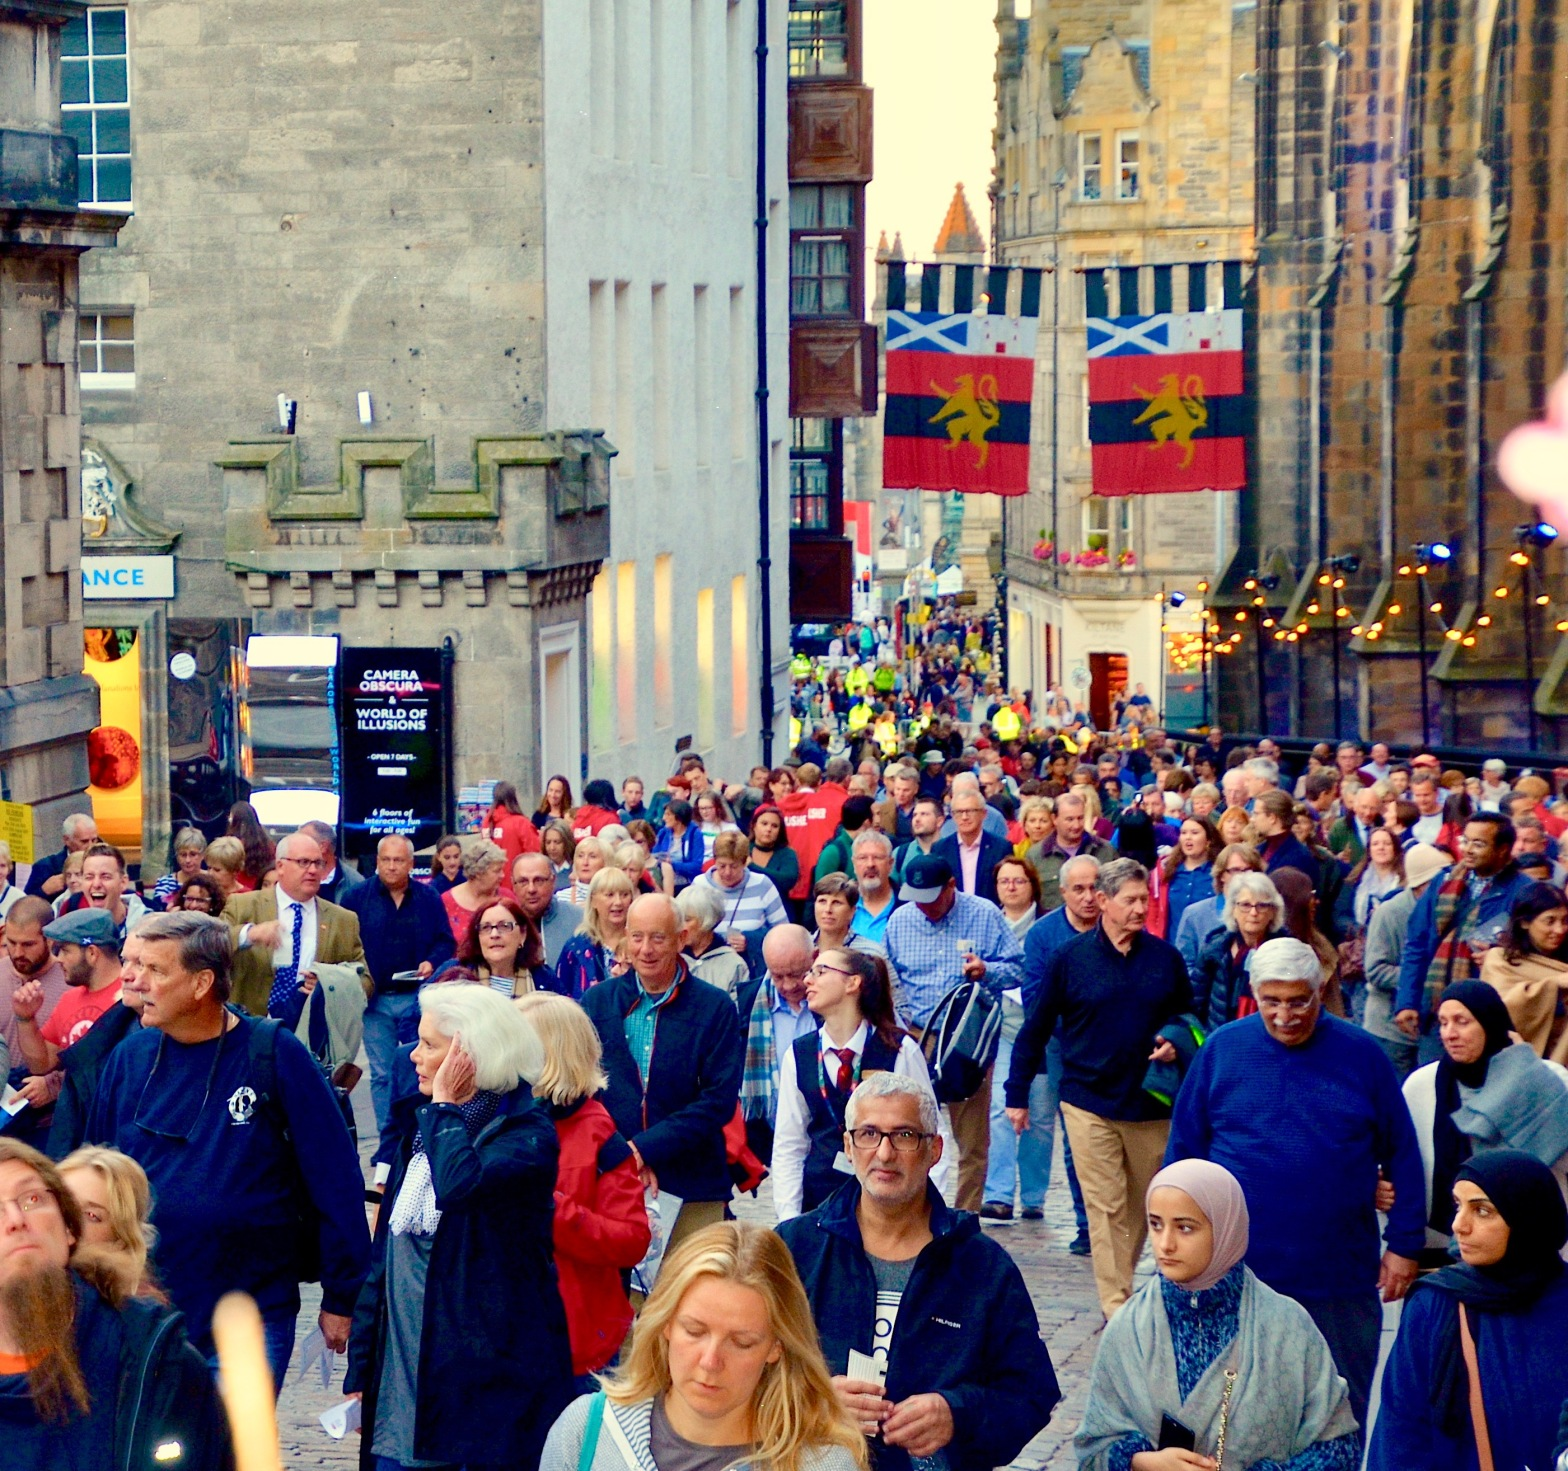 Crowds at the Edinburgh Military Tattoo